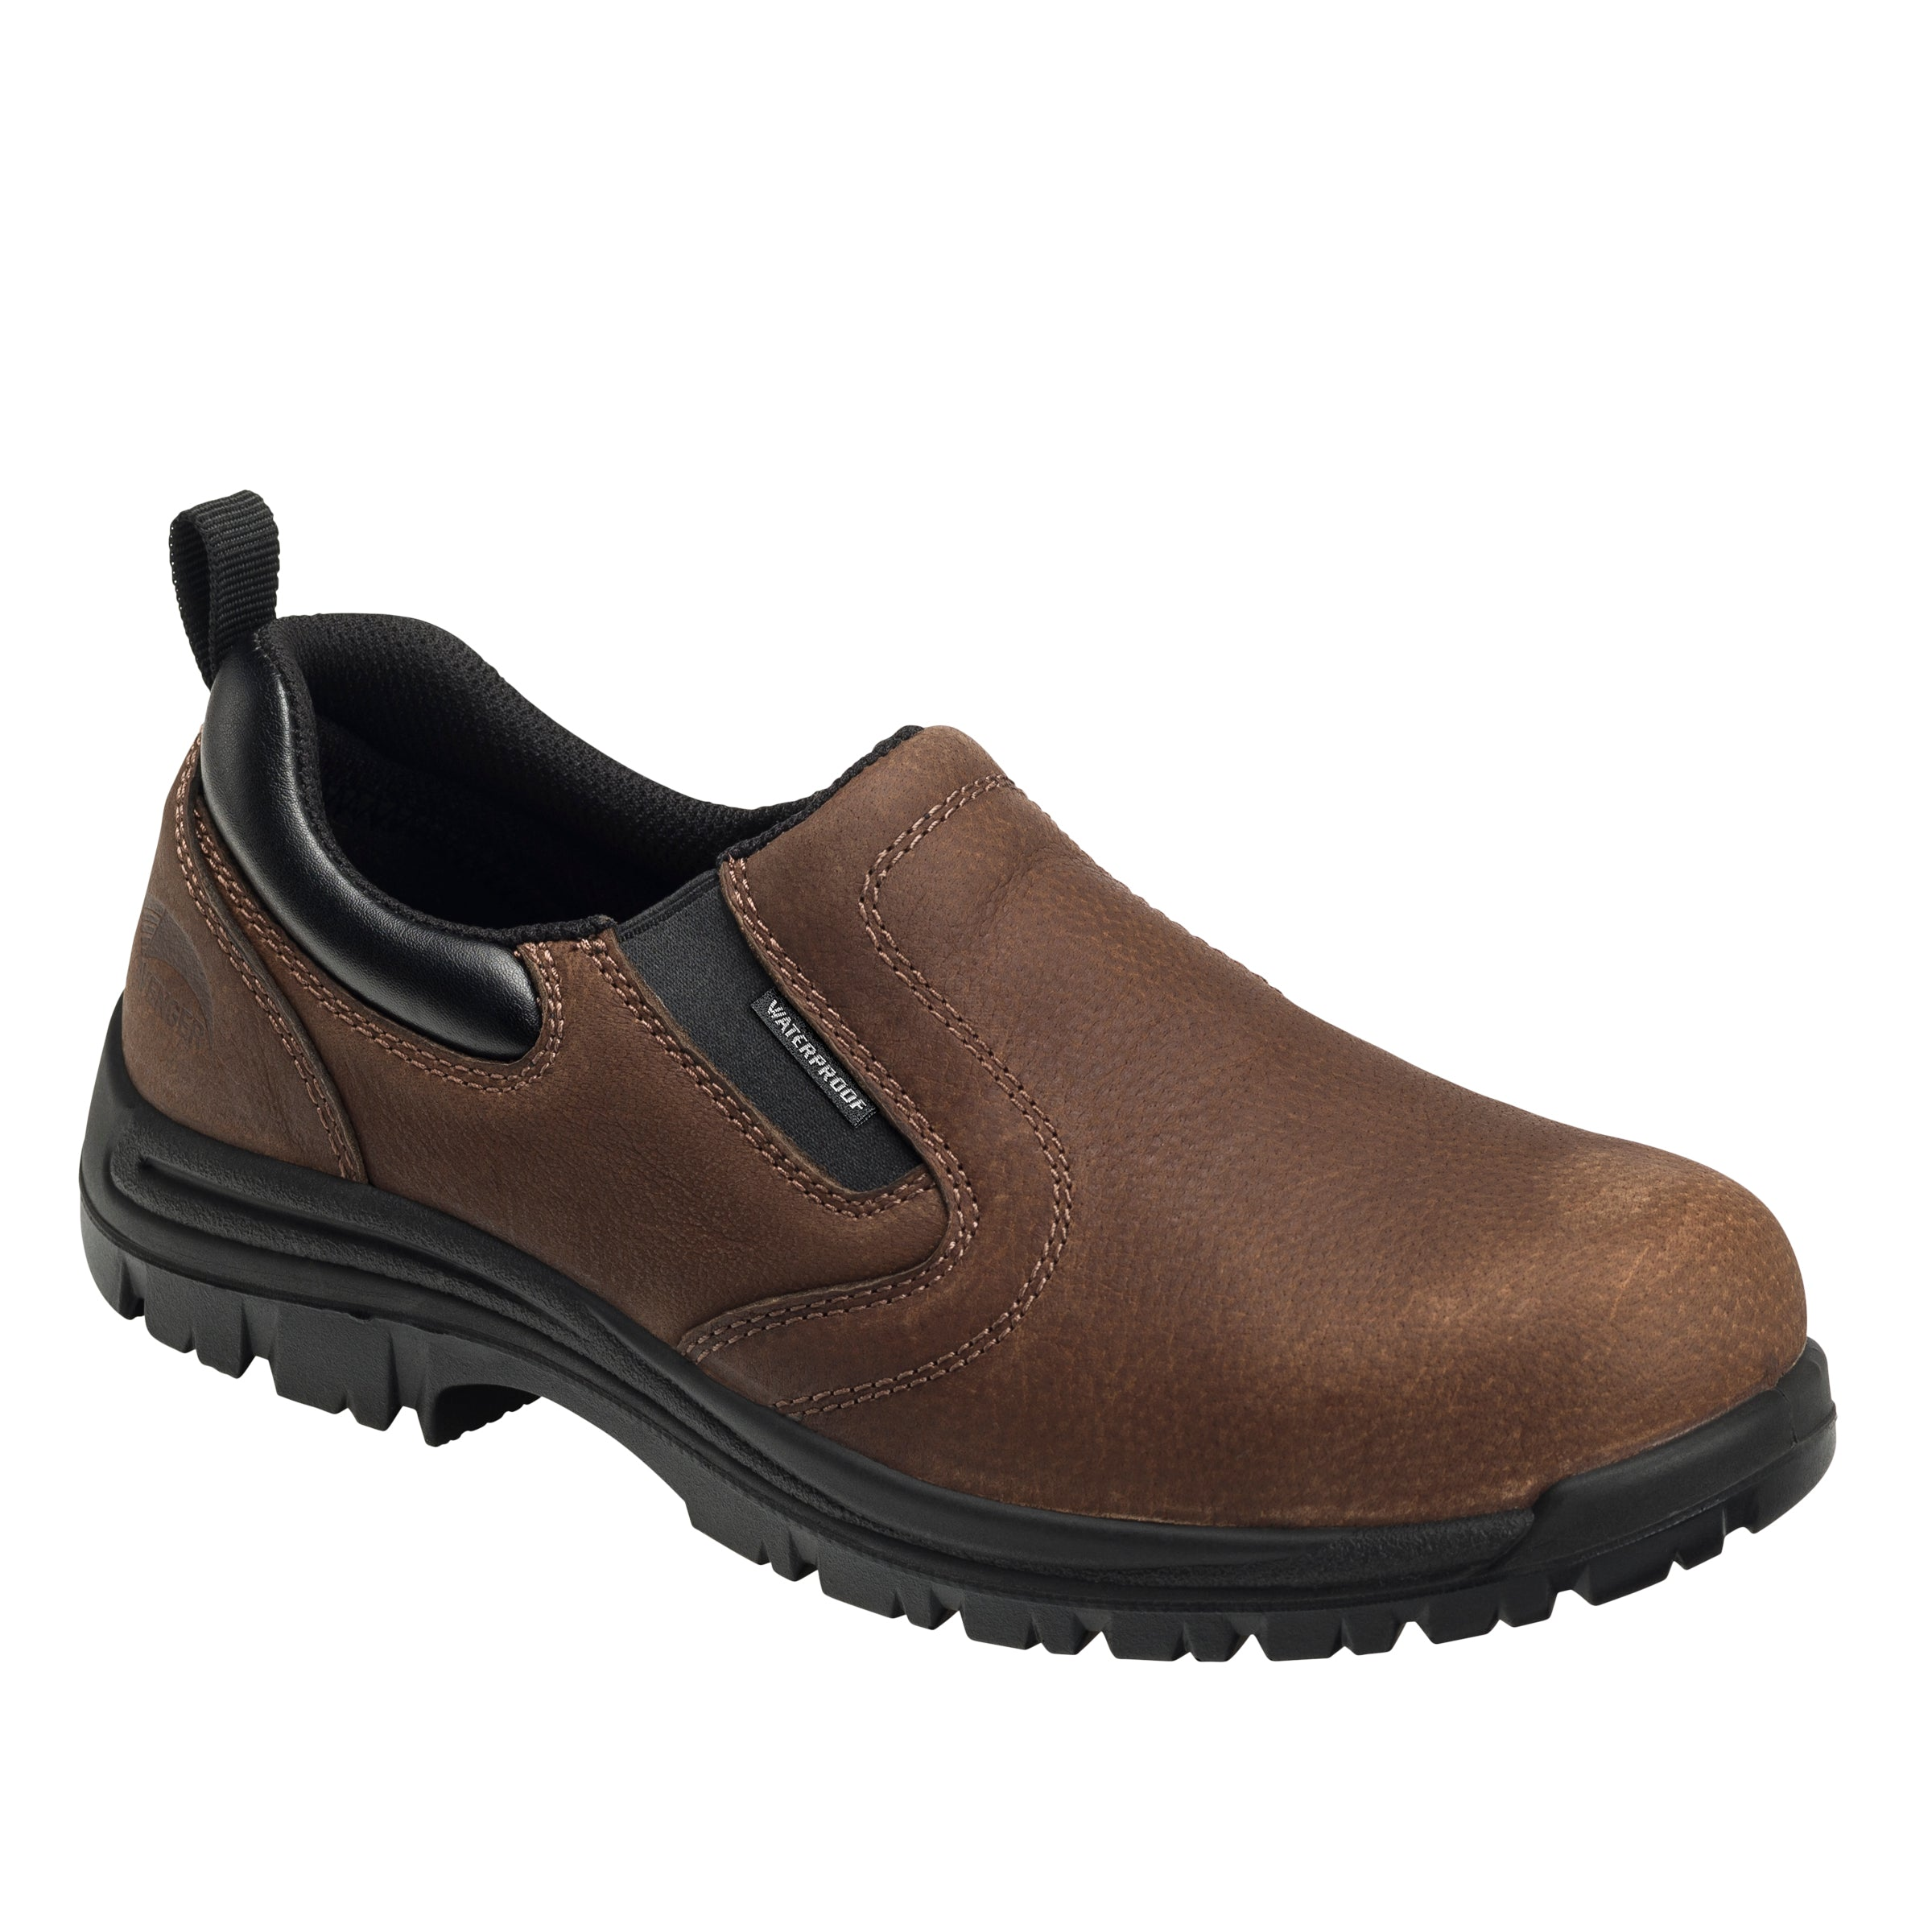 'Avenger' Men's EH WP Comp Toe Slip On - Brown